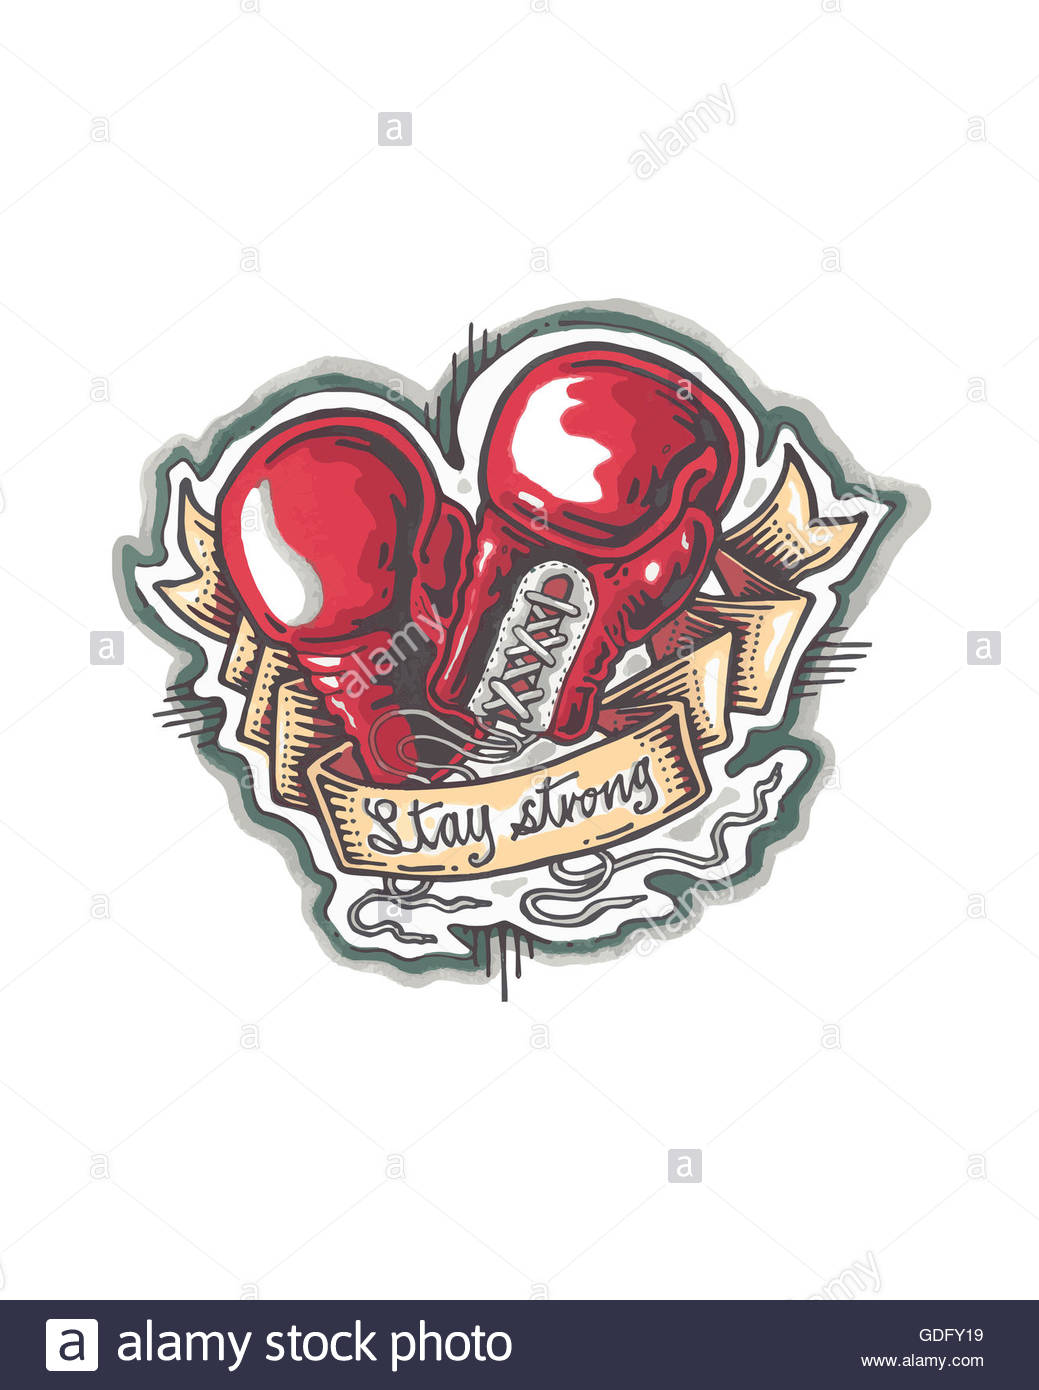 1039x1390 Hand drawn illustration or drawing of a pair of boxing gloves and